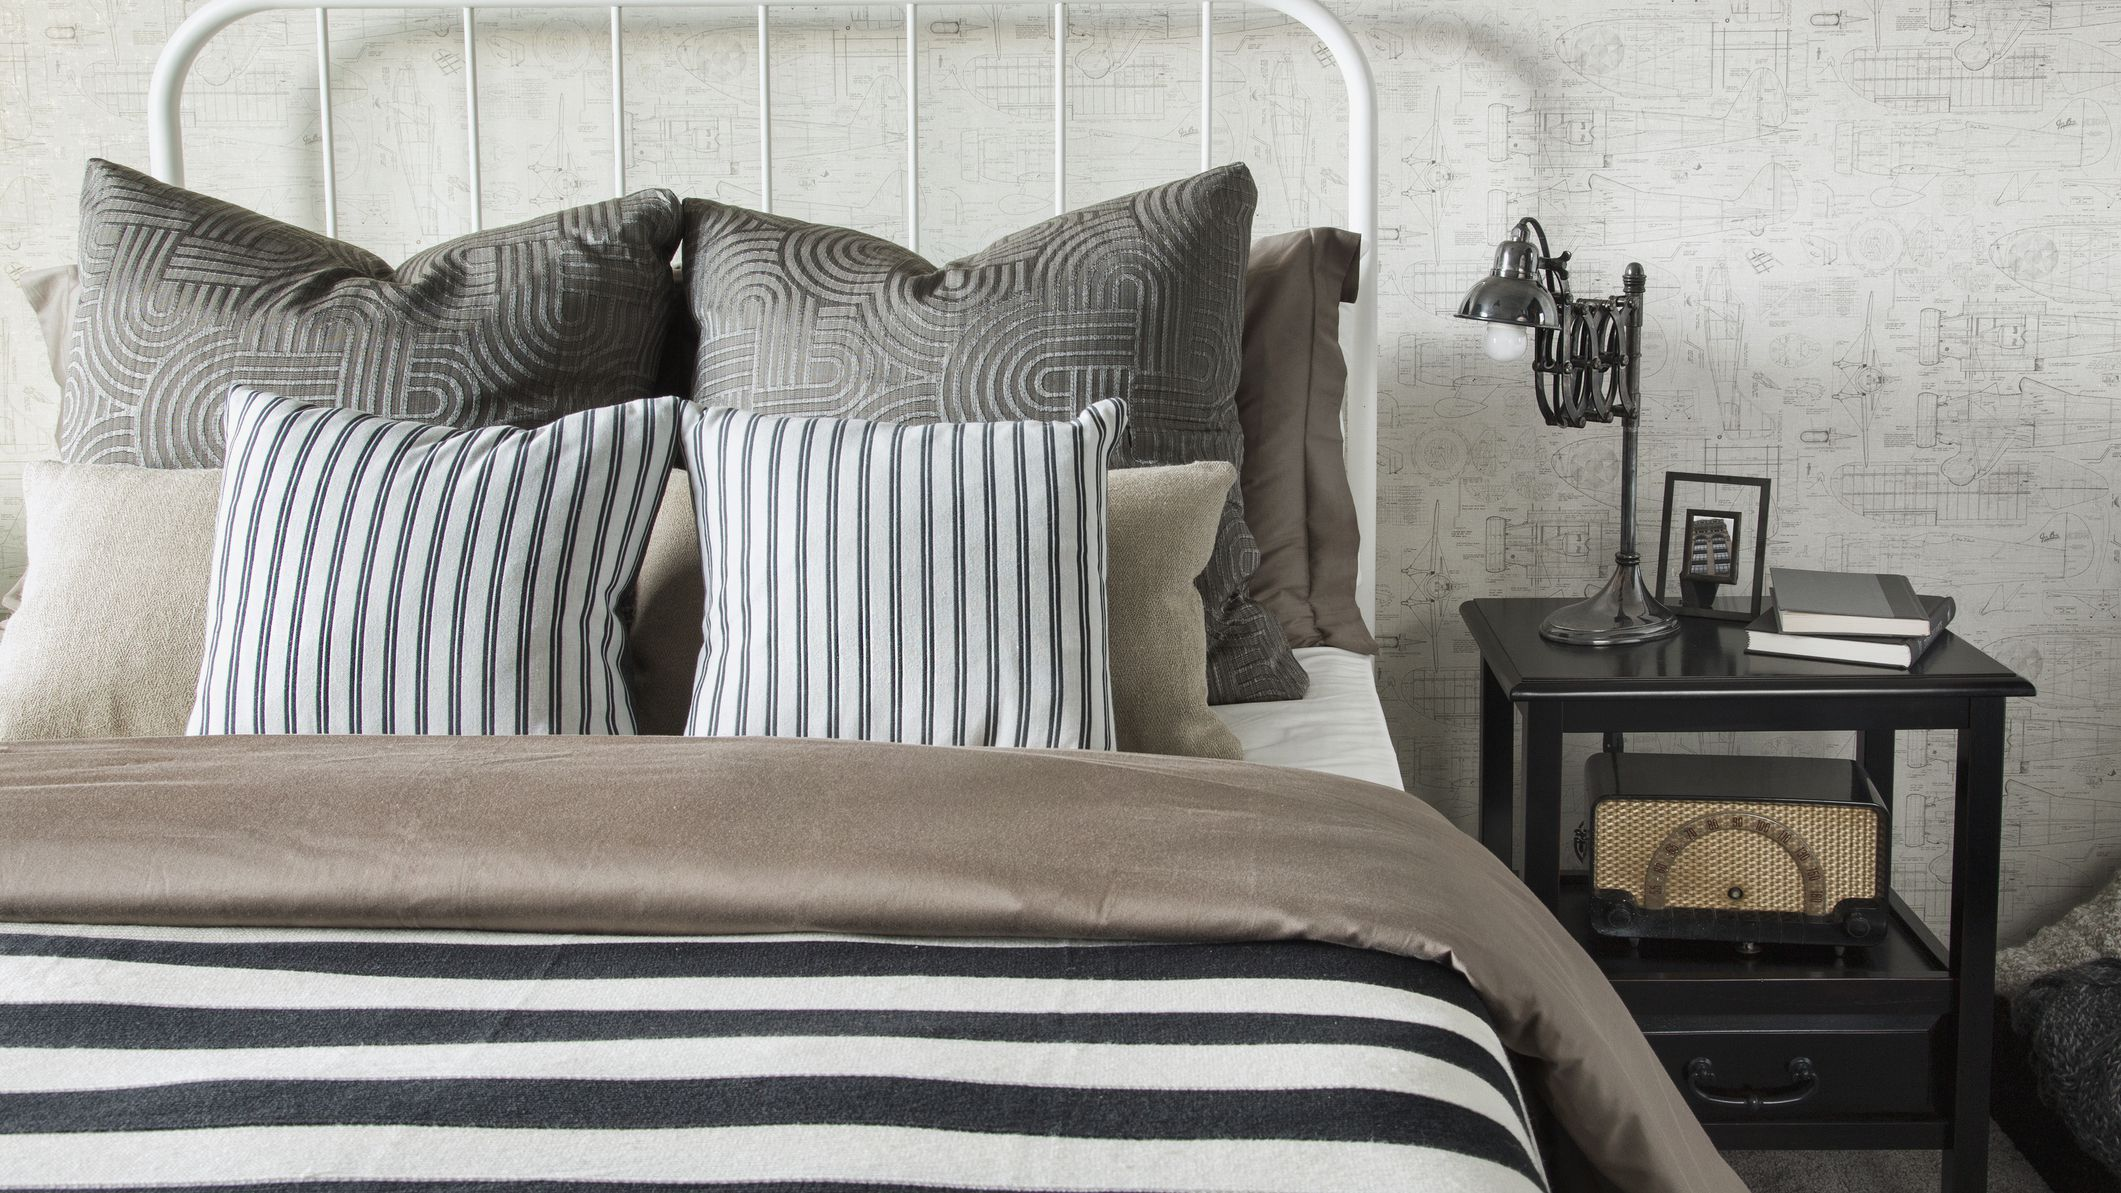 Directions And Measurements To Sew A Duvet Cover